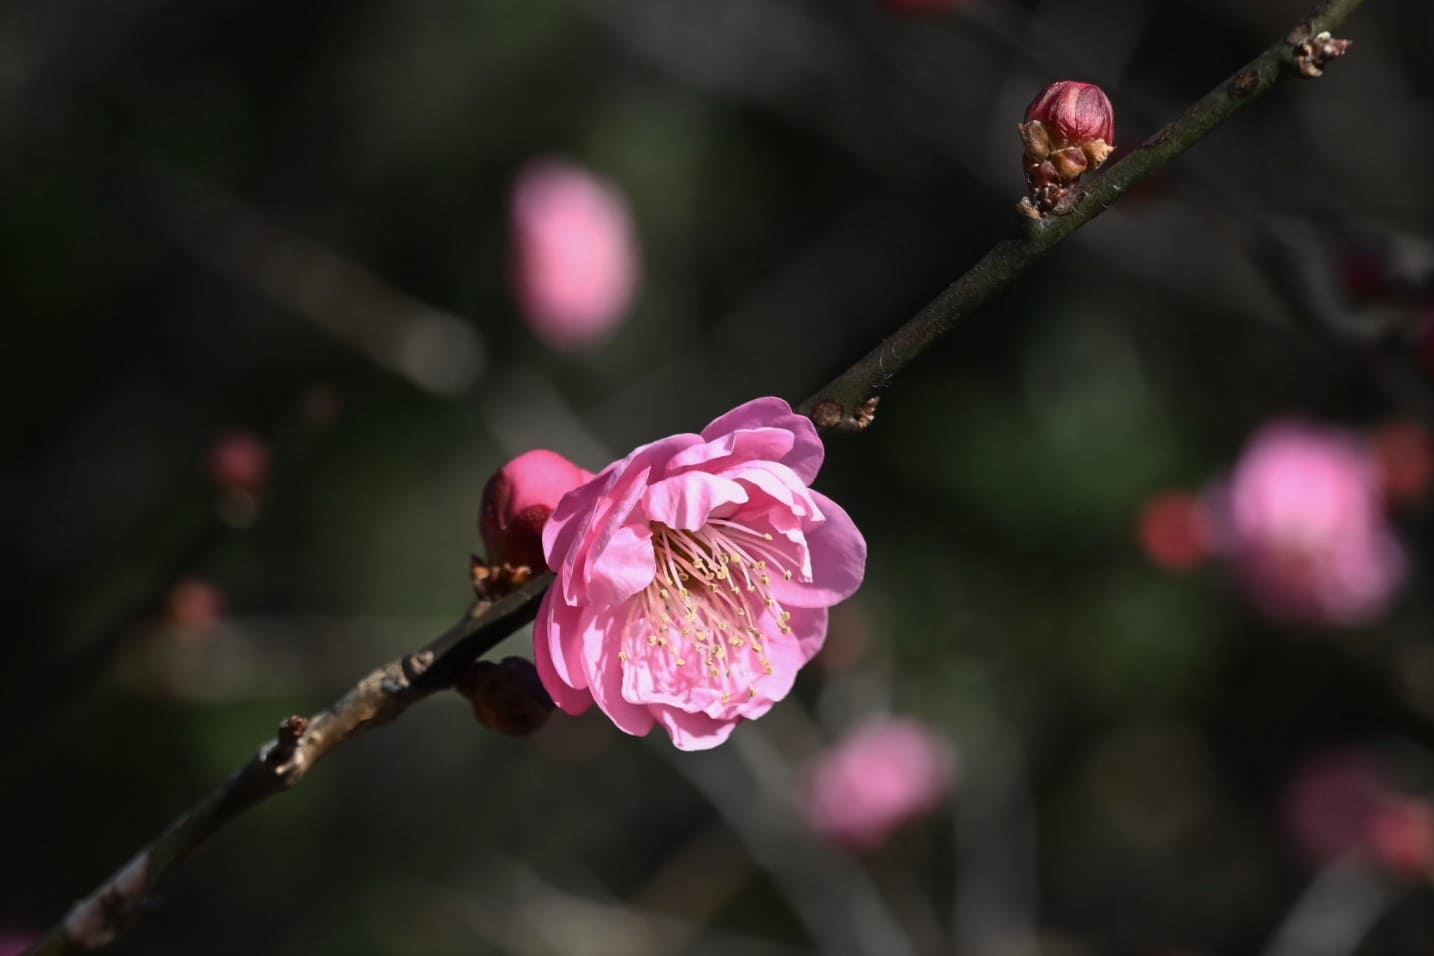 flowers of Japanese apricot